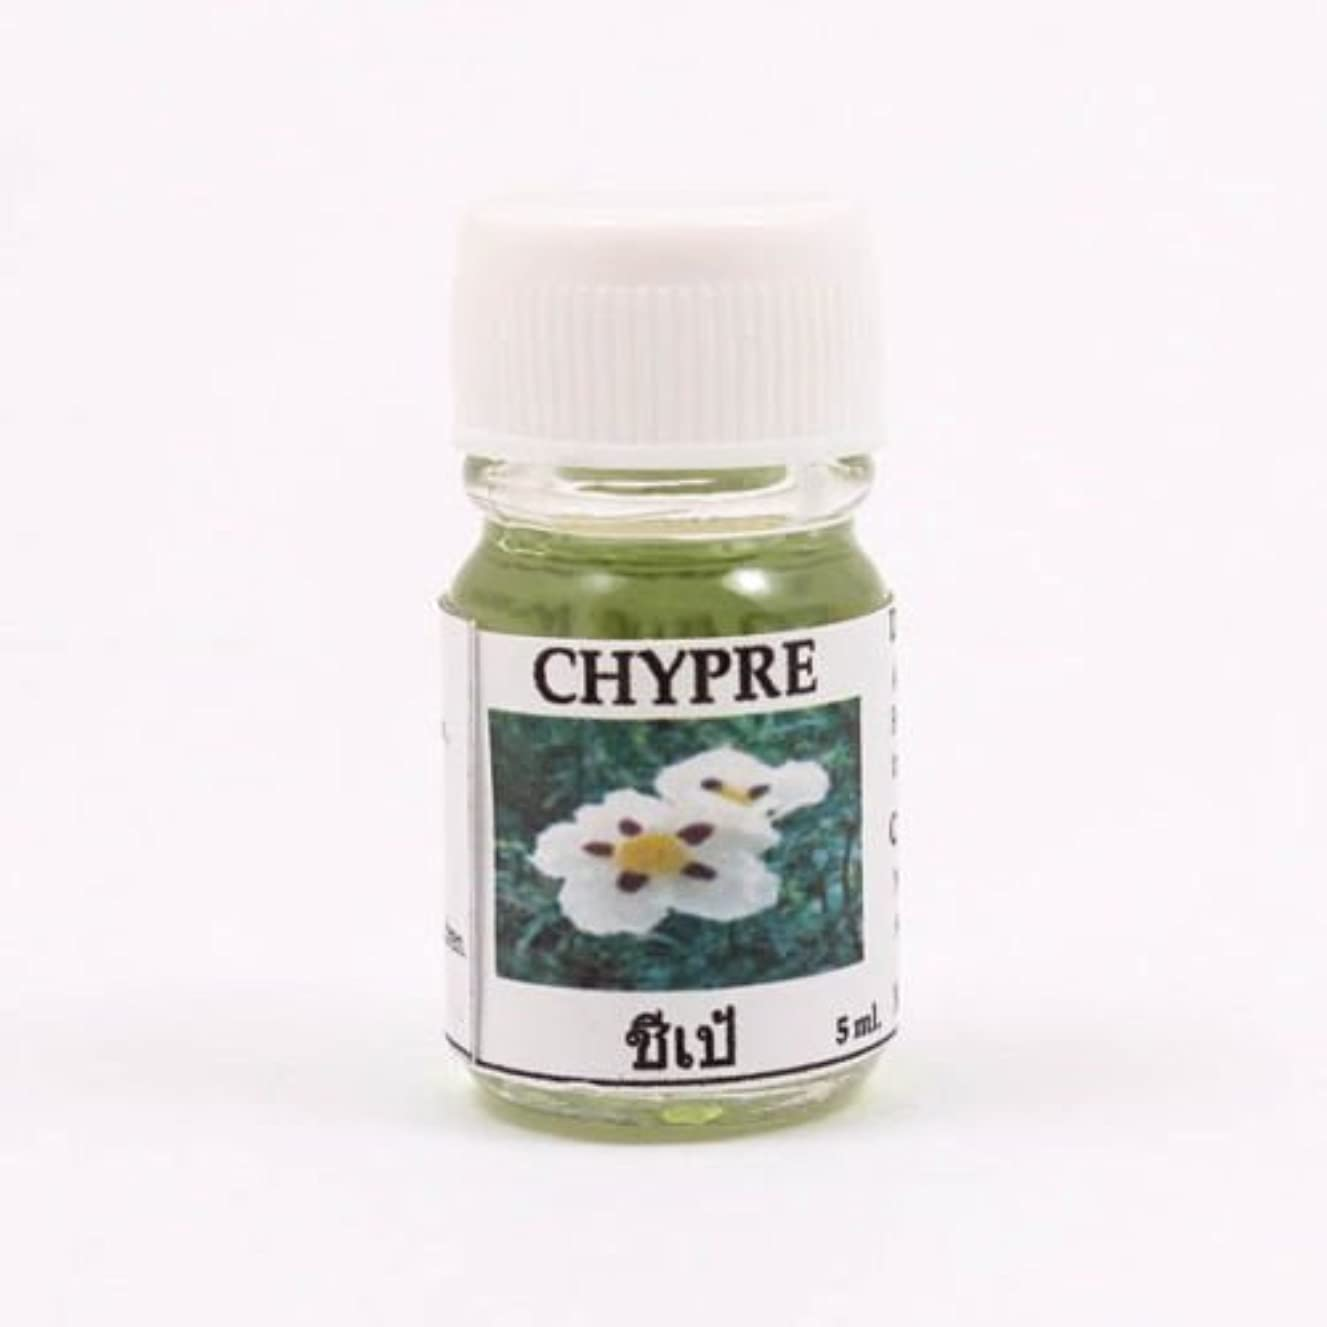 ピンチ悲しいブランチ6X Chypre Aroma Fragrance Essential Oil 5ML. (cc) Diffuser Burner Therapy